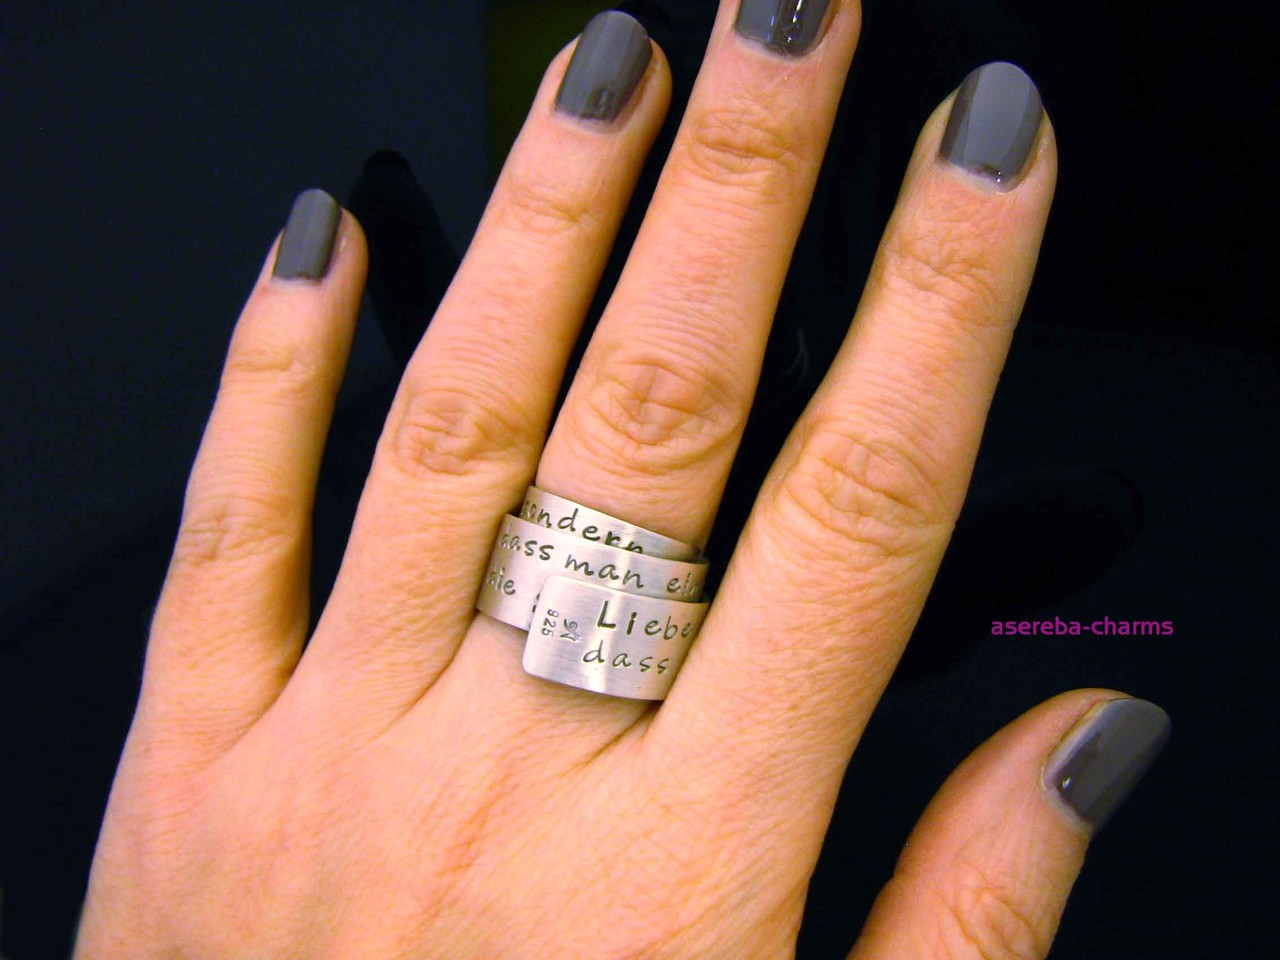 poetry ring charms personalisierter silberschmuck 925. Black Bedroom Furniture Sets. Home Design Ideas